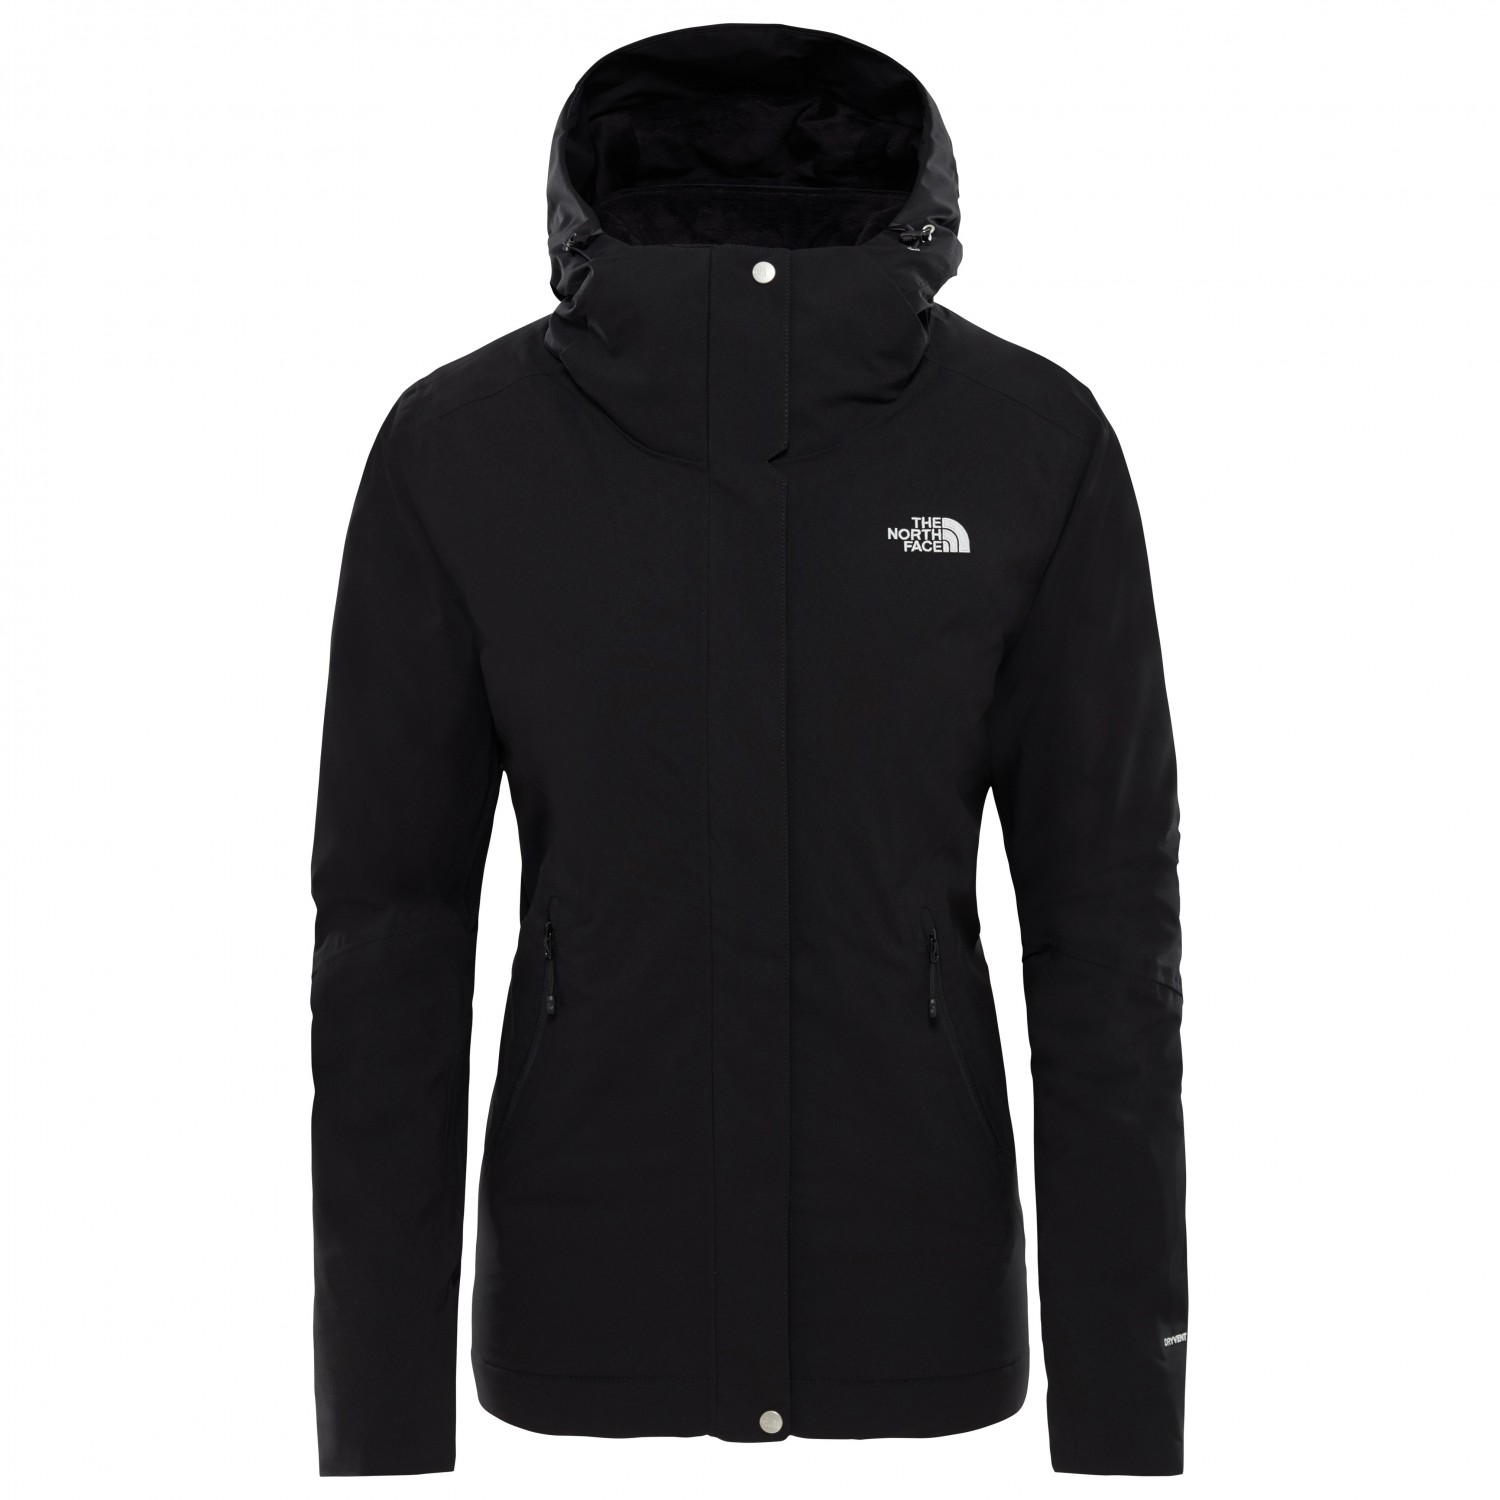 Discount coupons the north face